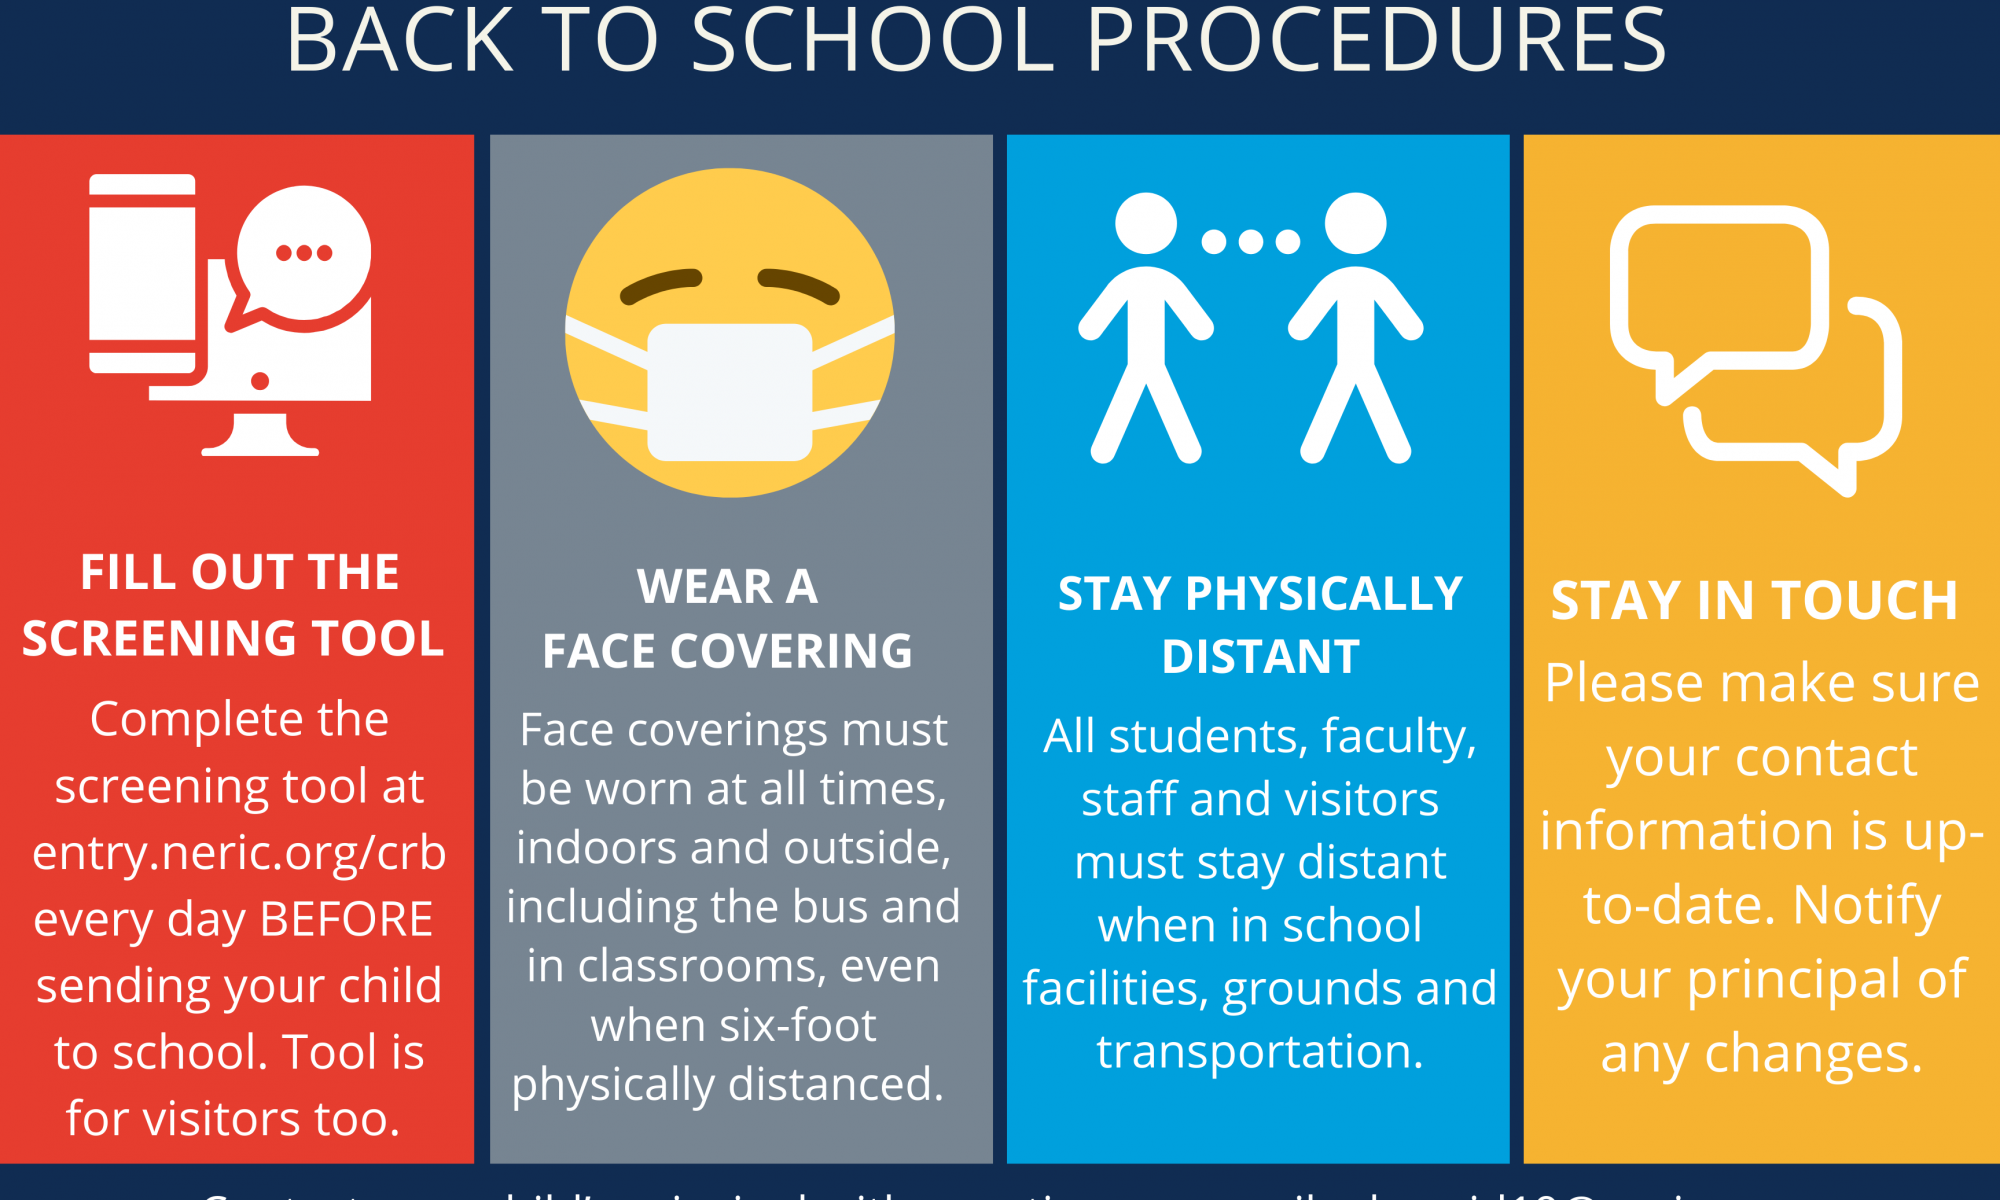 Colorful graphical image showing Capital Region BOCES back to school procedures.